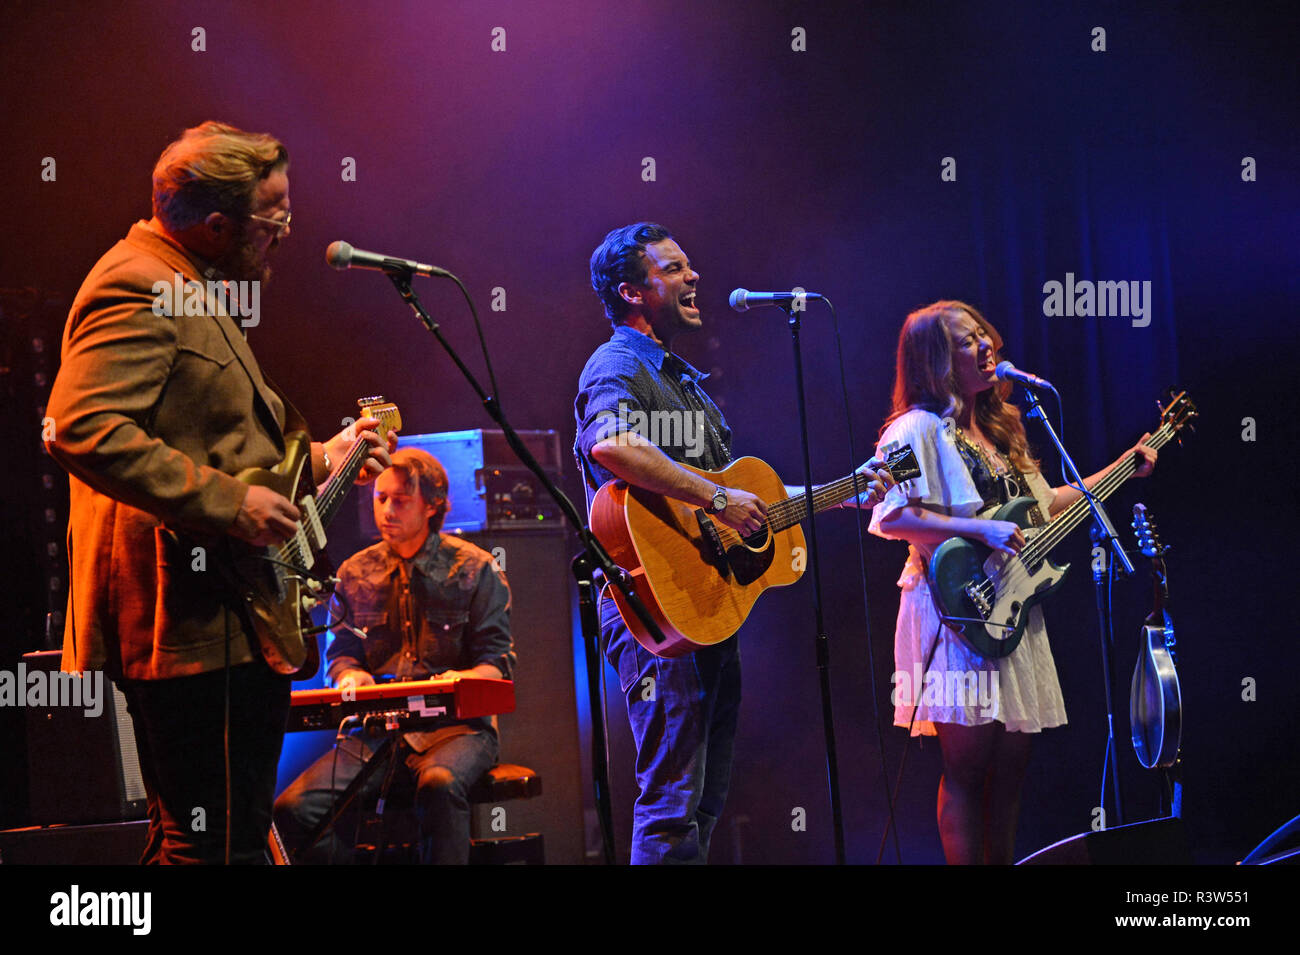 The Lone Bellow band playing at Mareel in the Shetland Isles Scotland - Stock Image